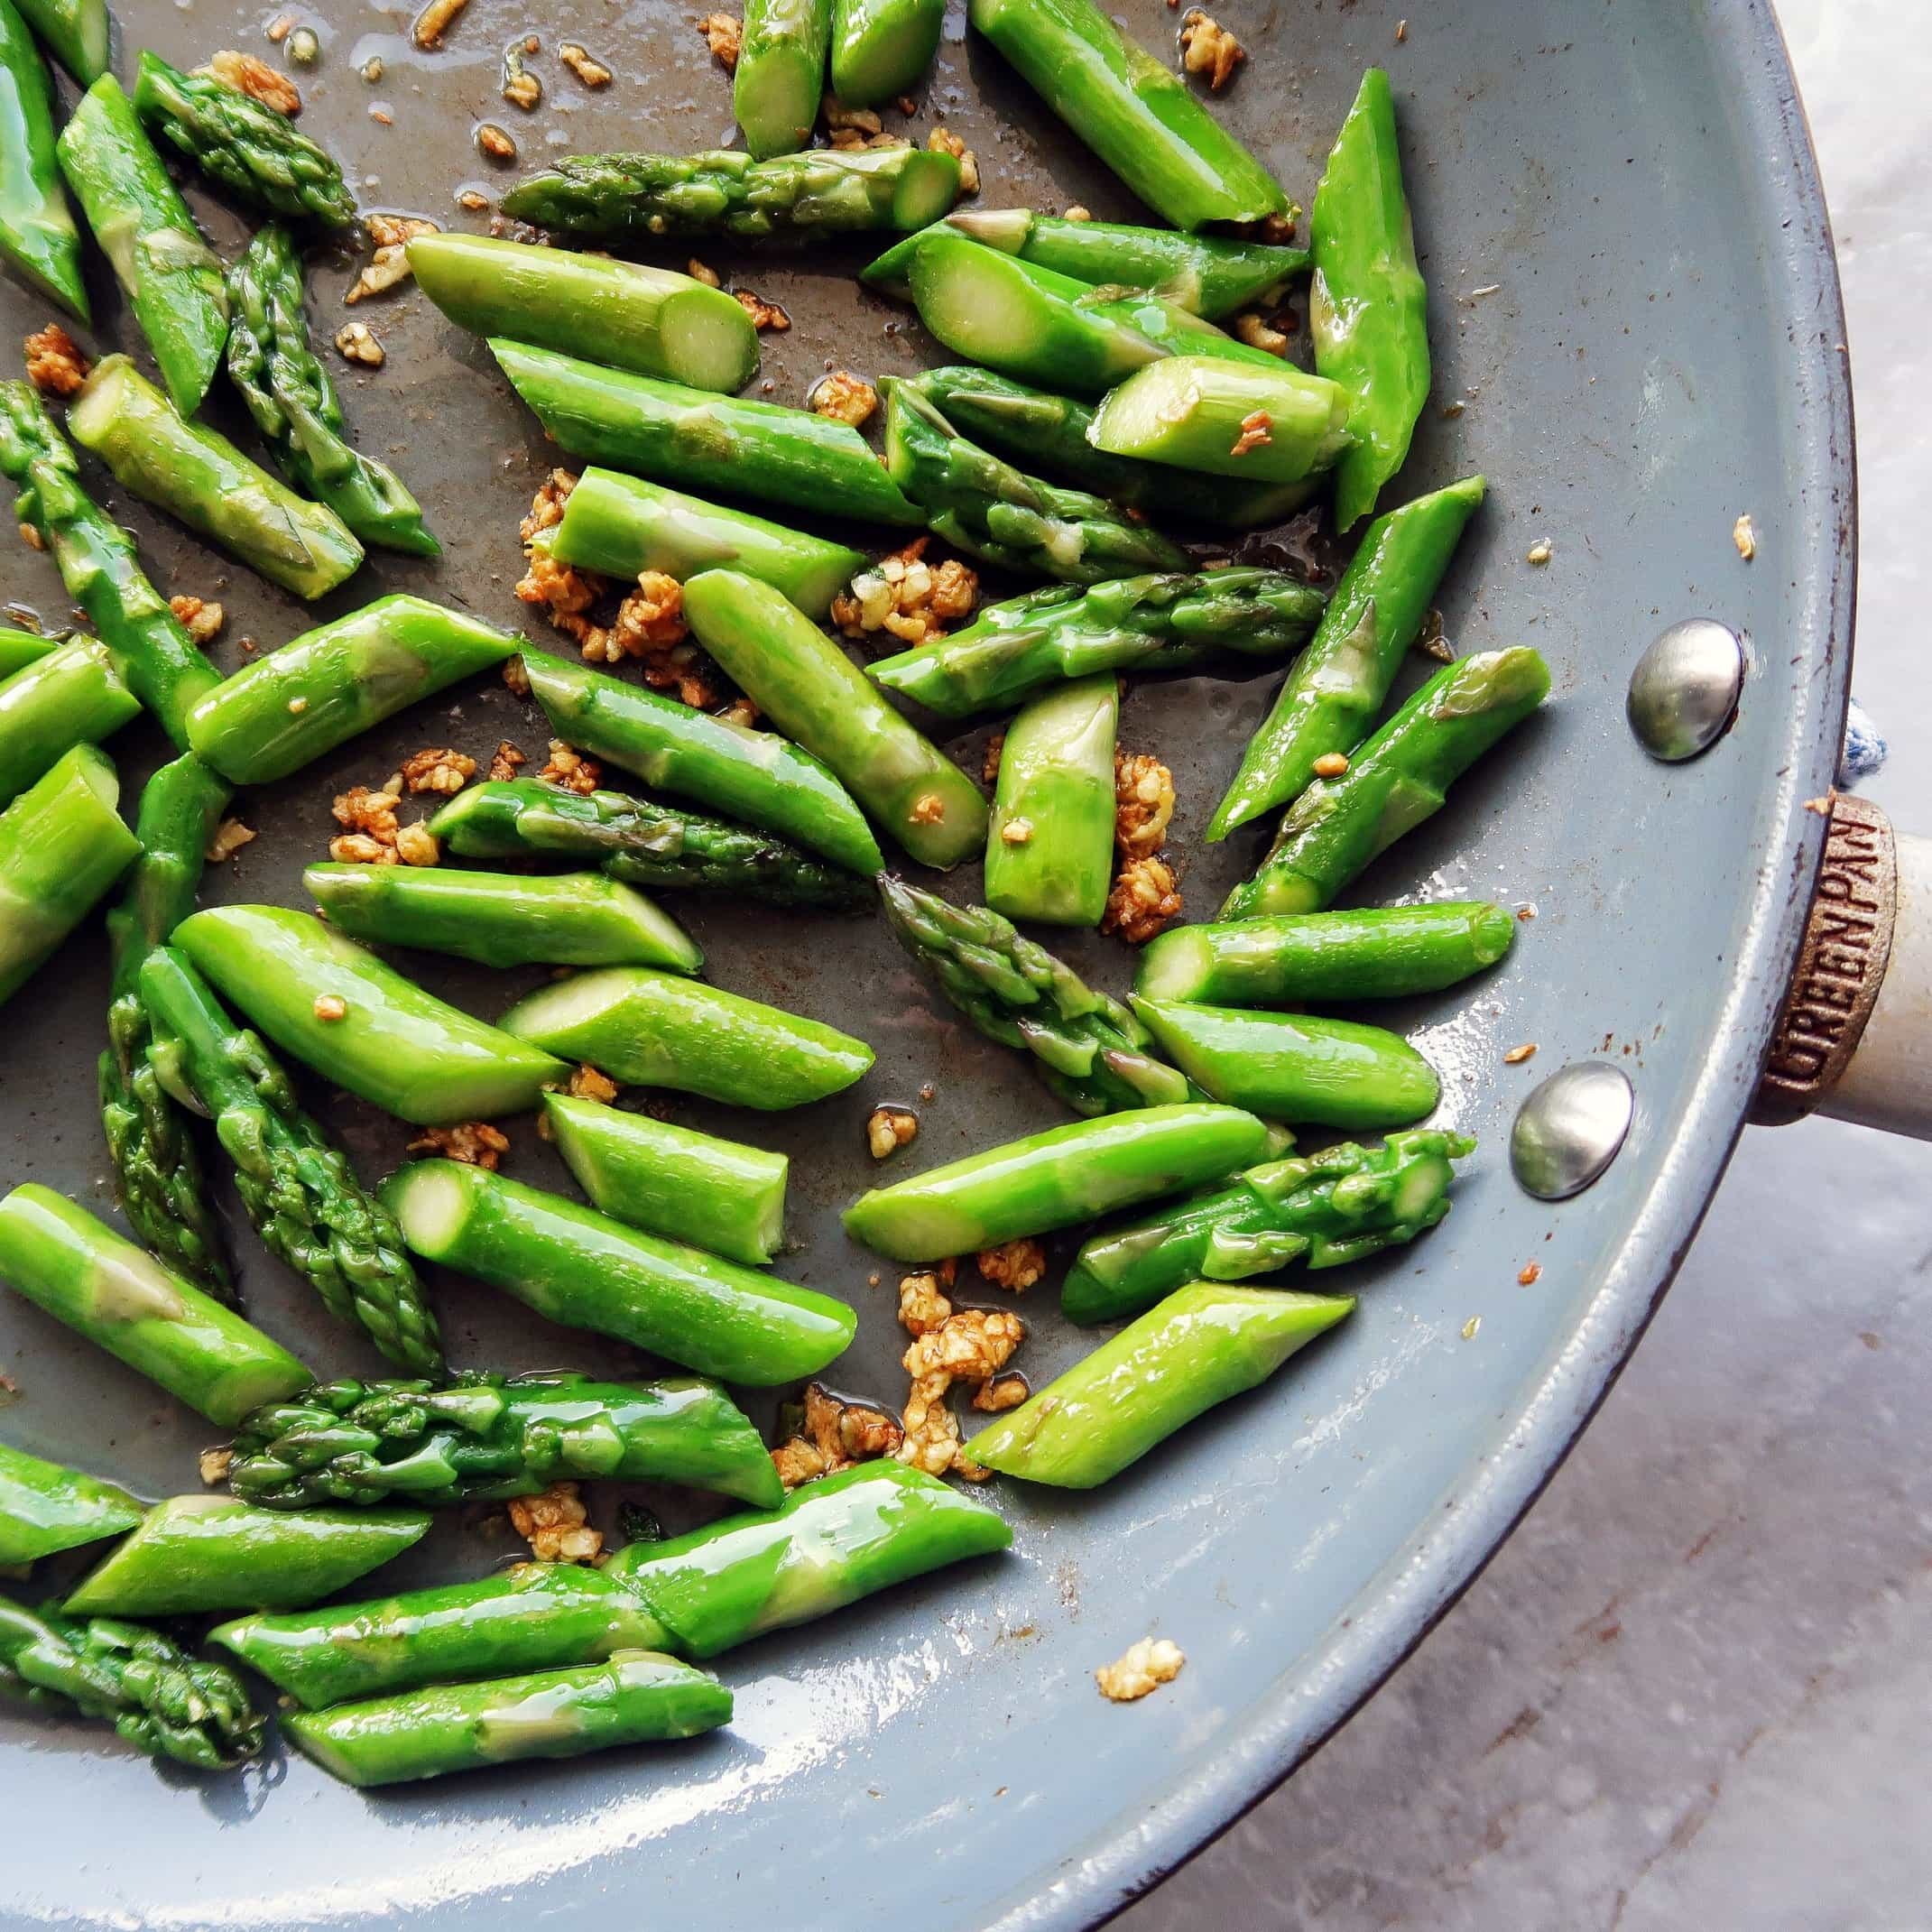 A saute pan featuring sliced asparagus and crispy brown garlic.